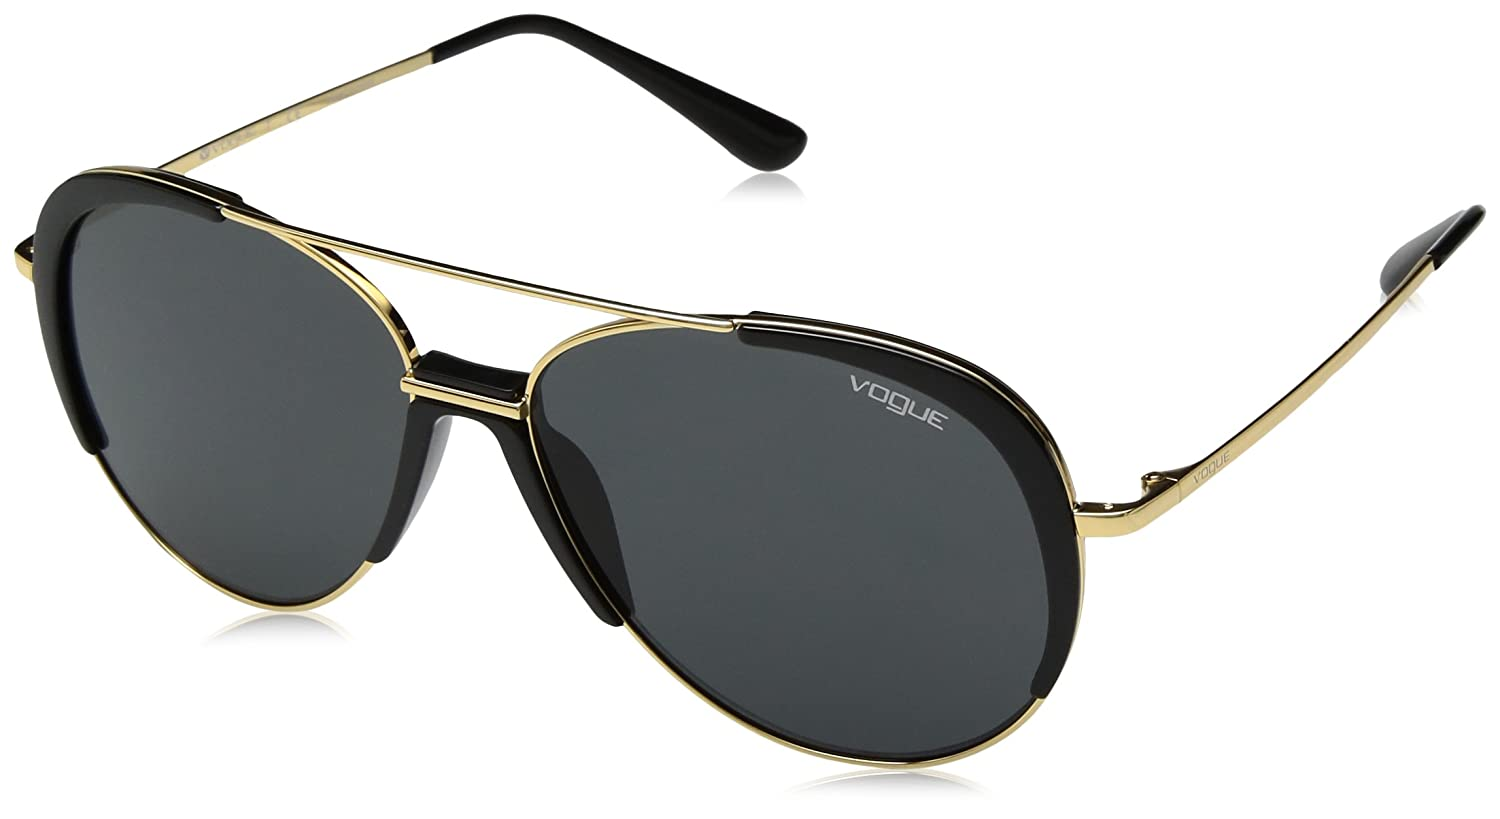 Amazon.com: Vogue 0vo4097s Aviator - Gafas de sol para mujer ...